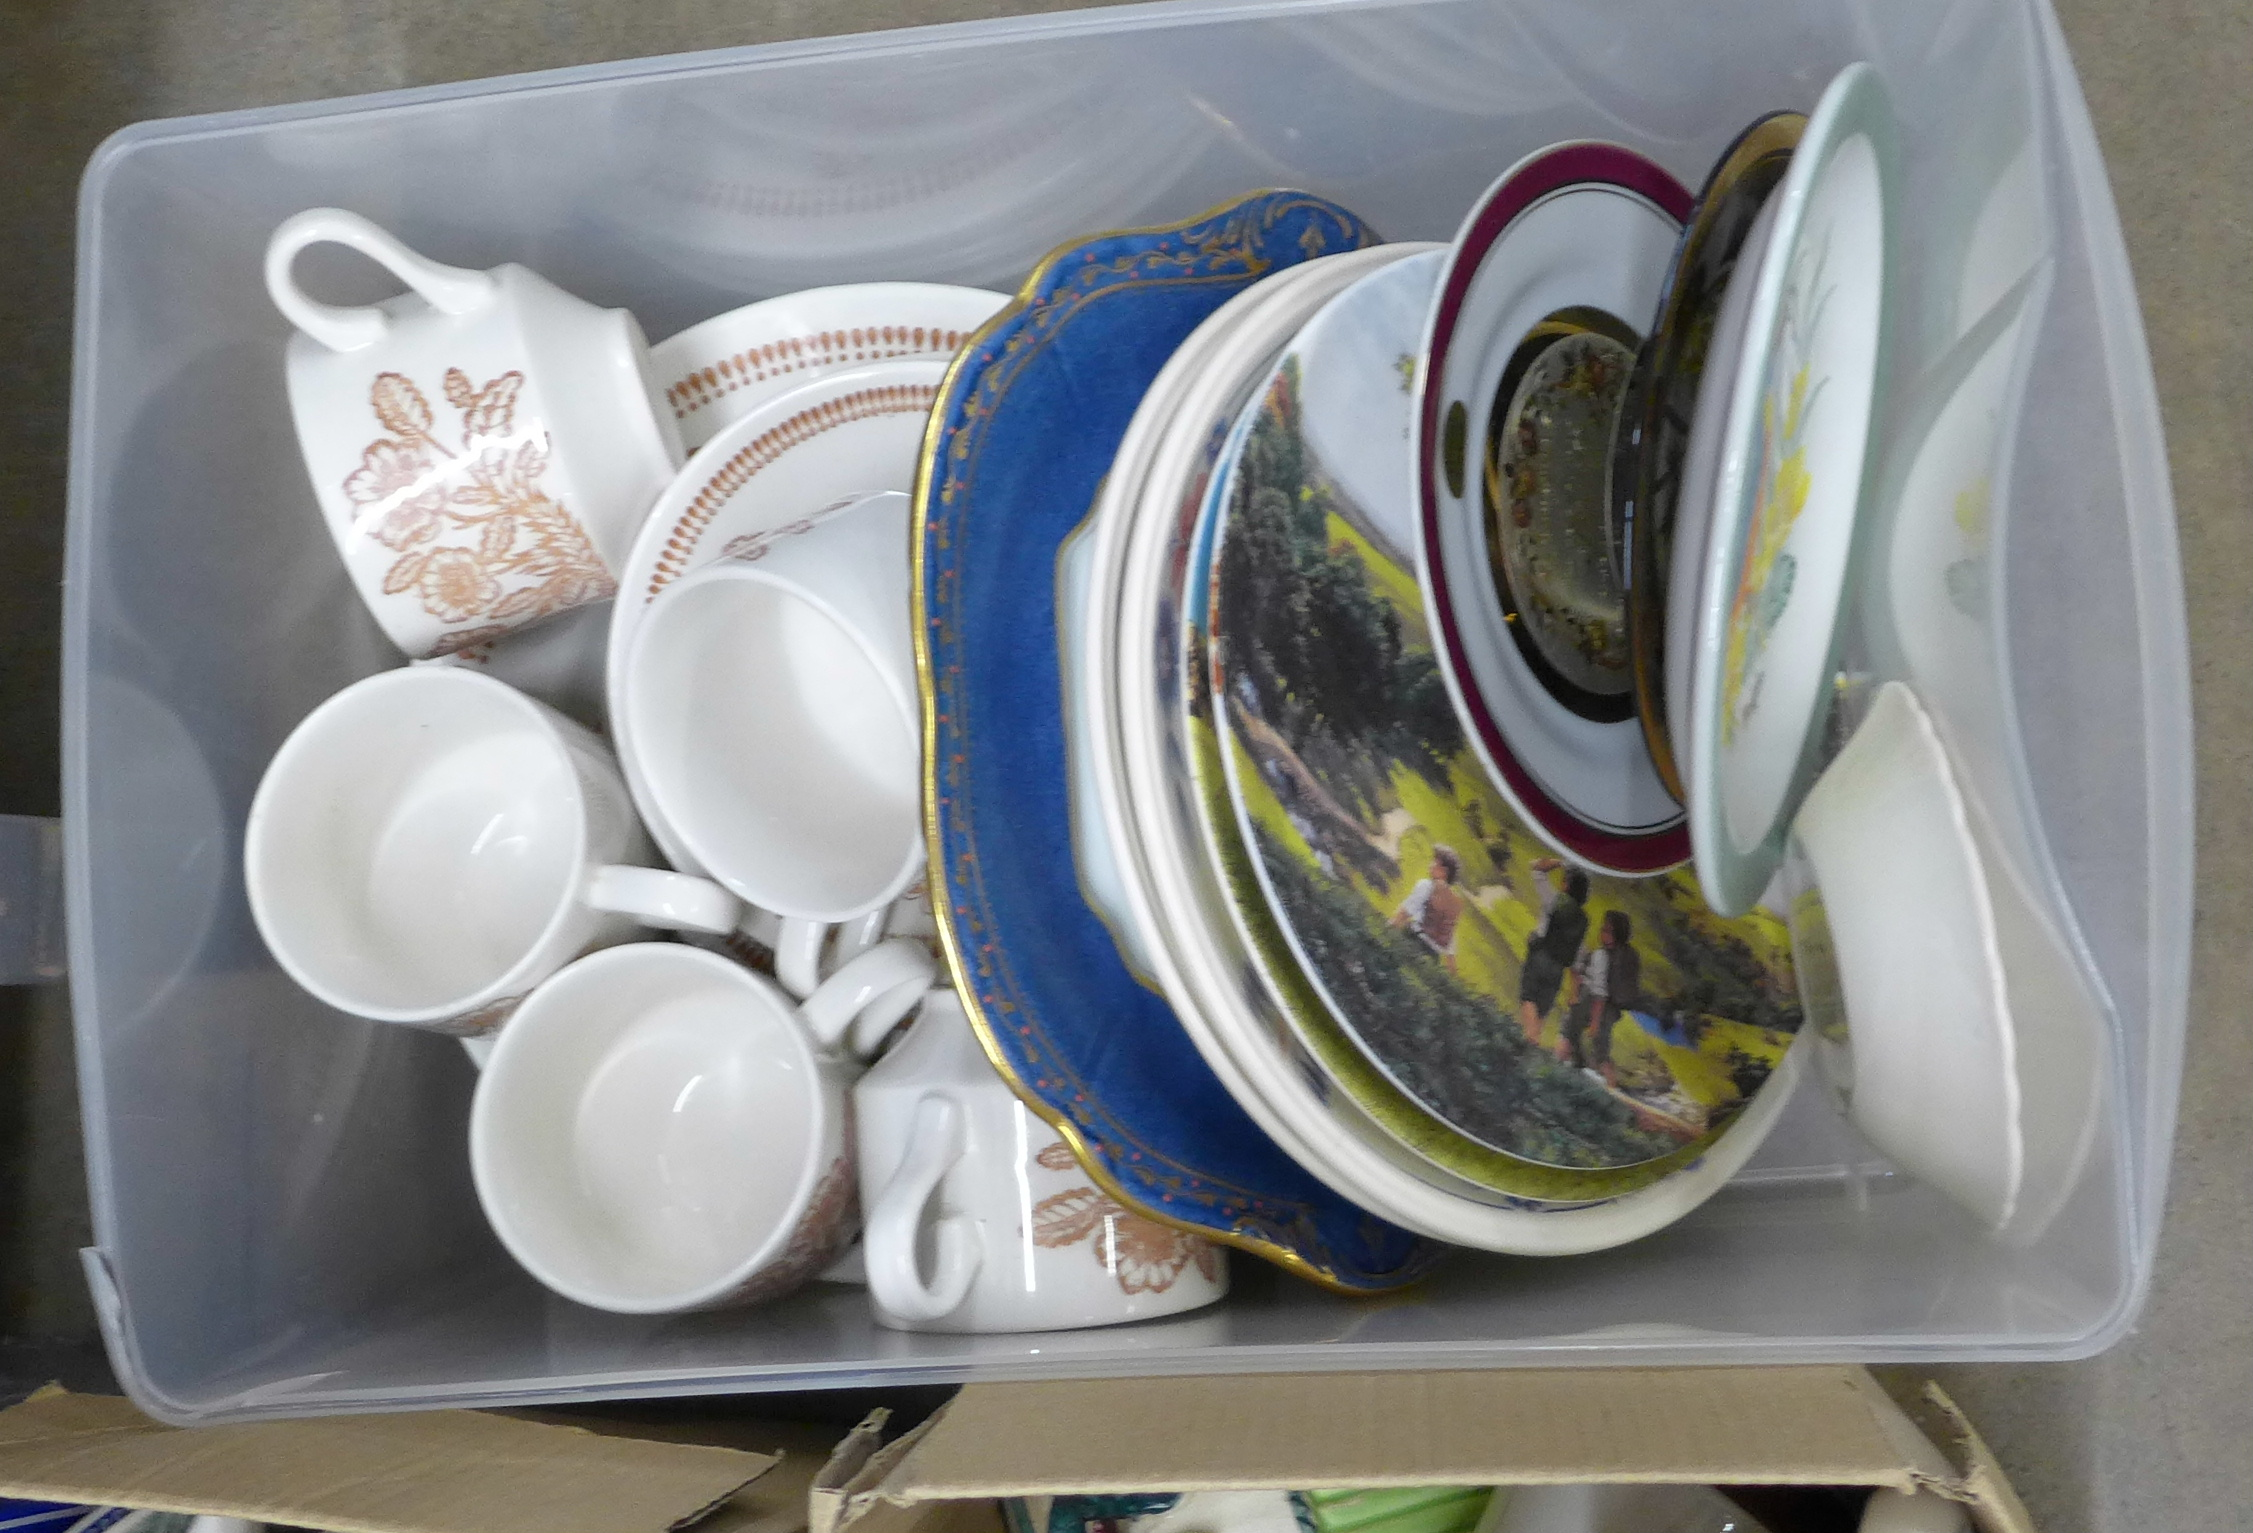 A collection of mixed china including Royal Doulton, Limoges and Hammersley and two Lord of the - Image 4 of 4